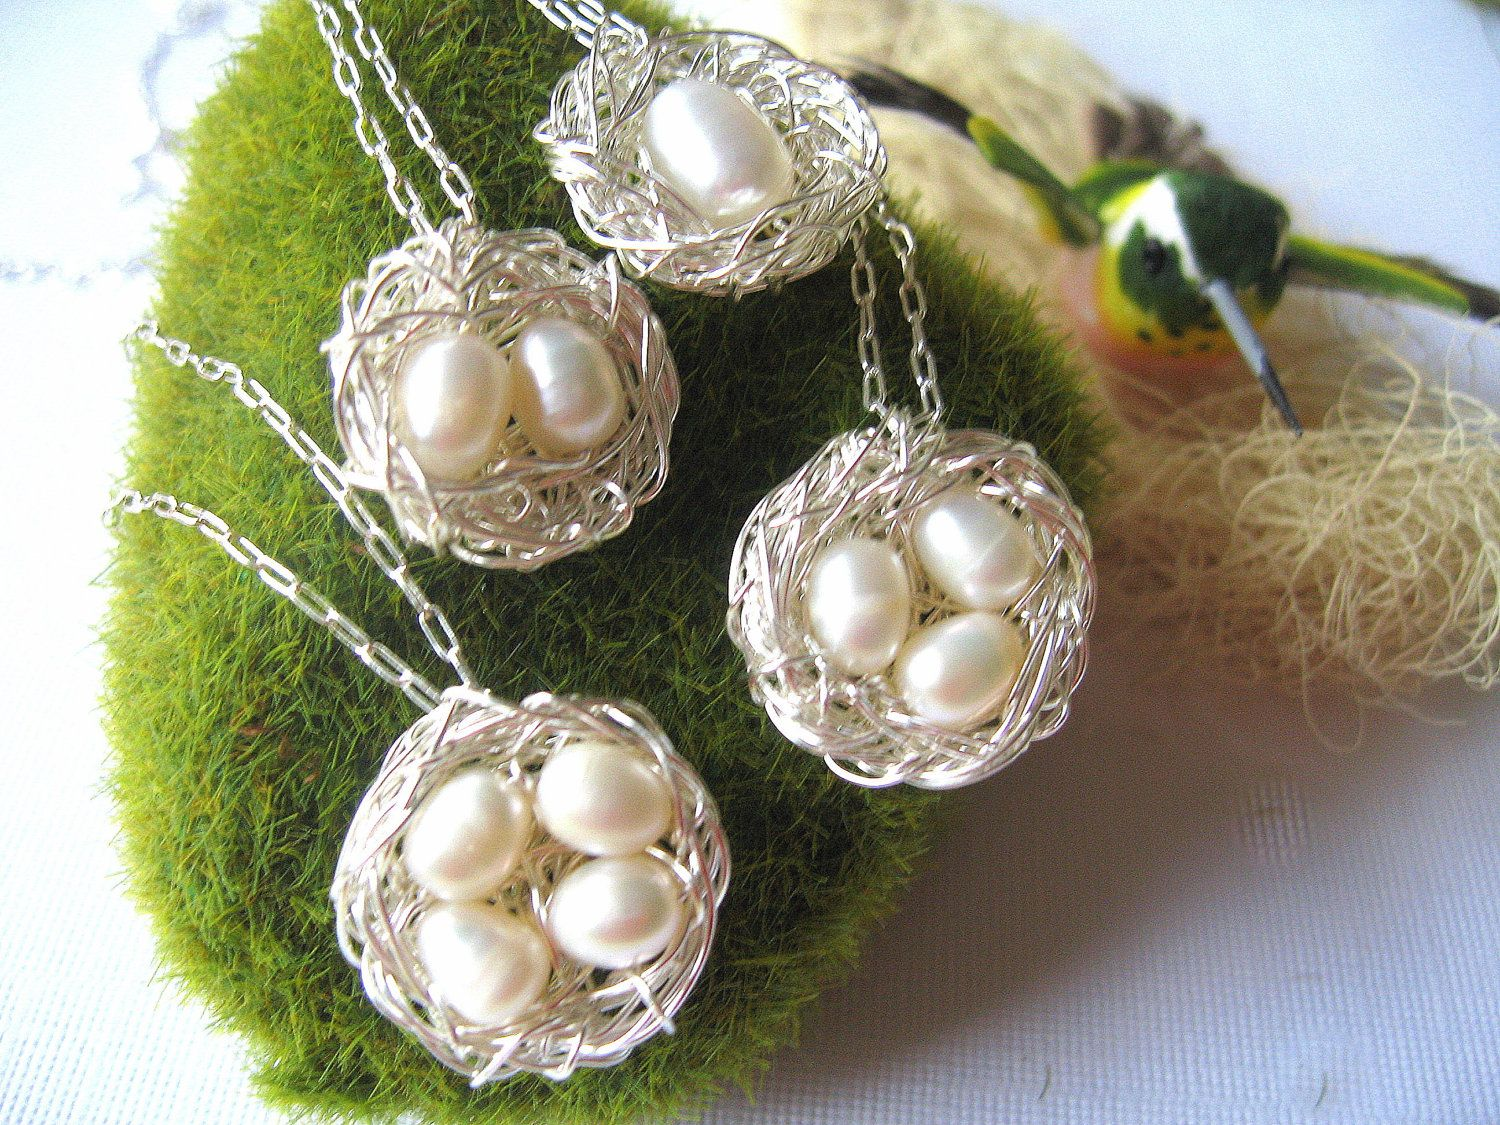 Momma Bird nest necklace with pearls, personalized gifts for mom, mothers day, sterling silver chain. $44.00, via Etsy.